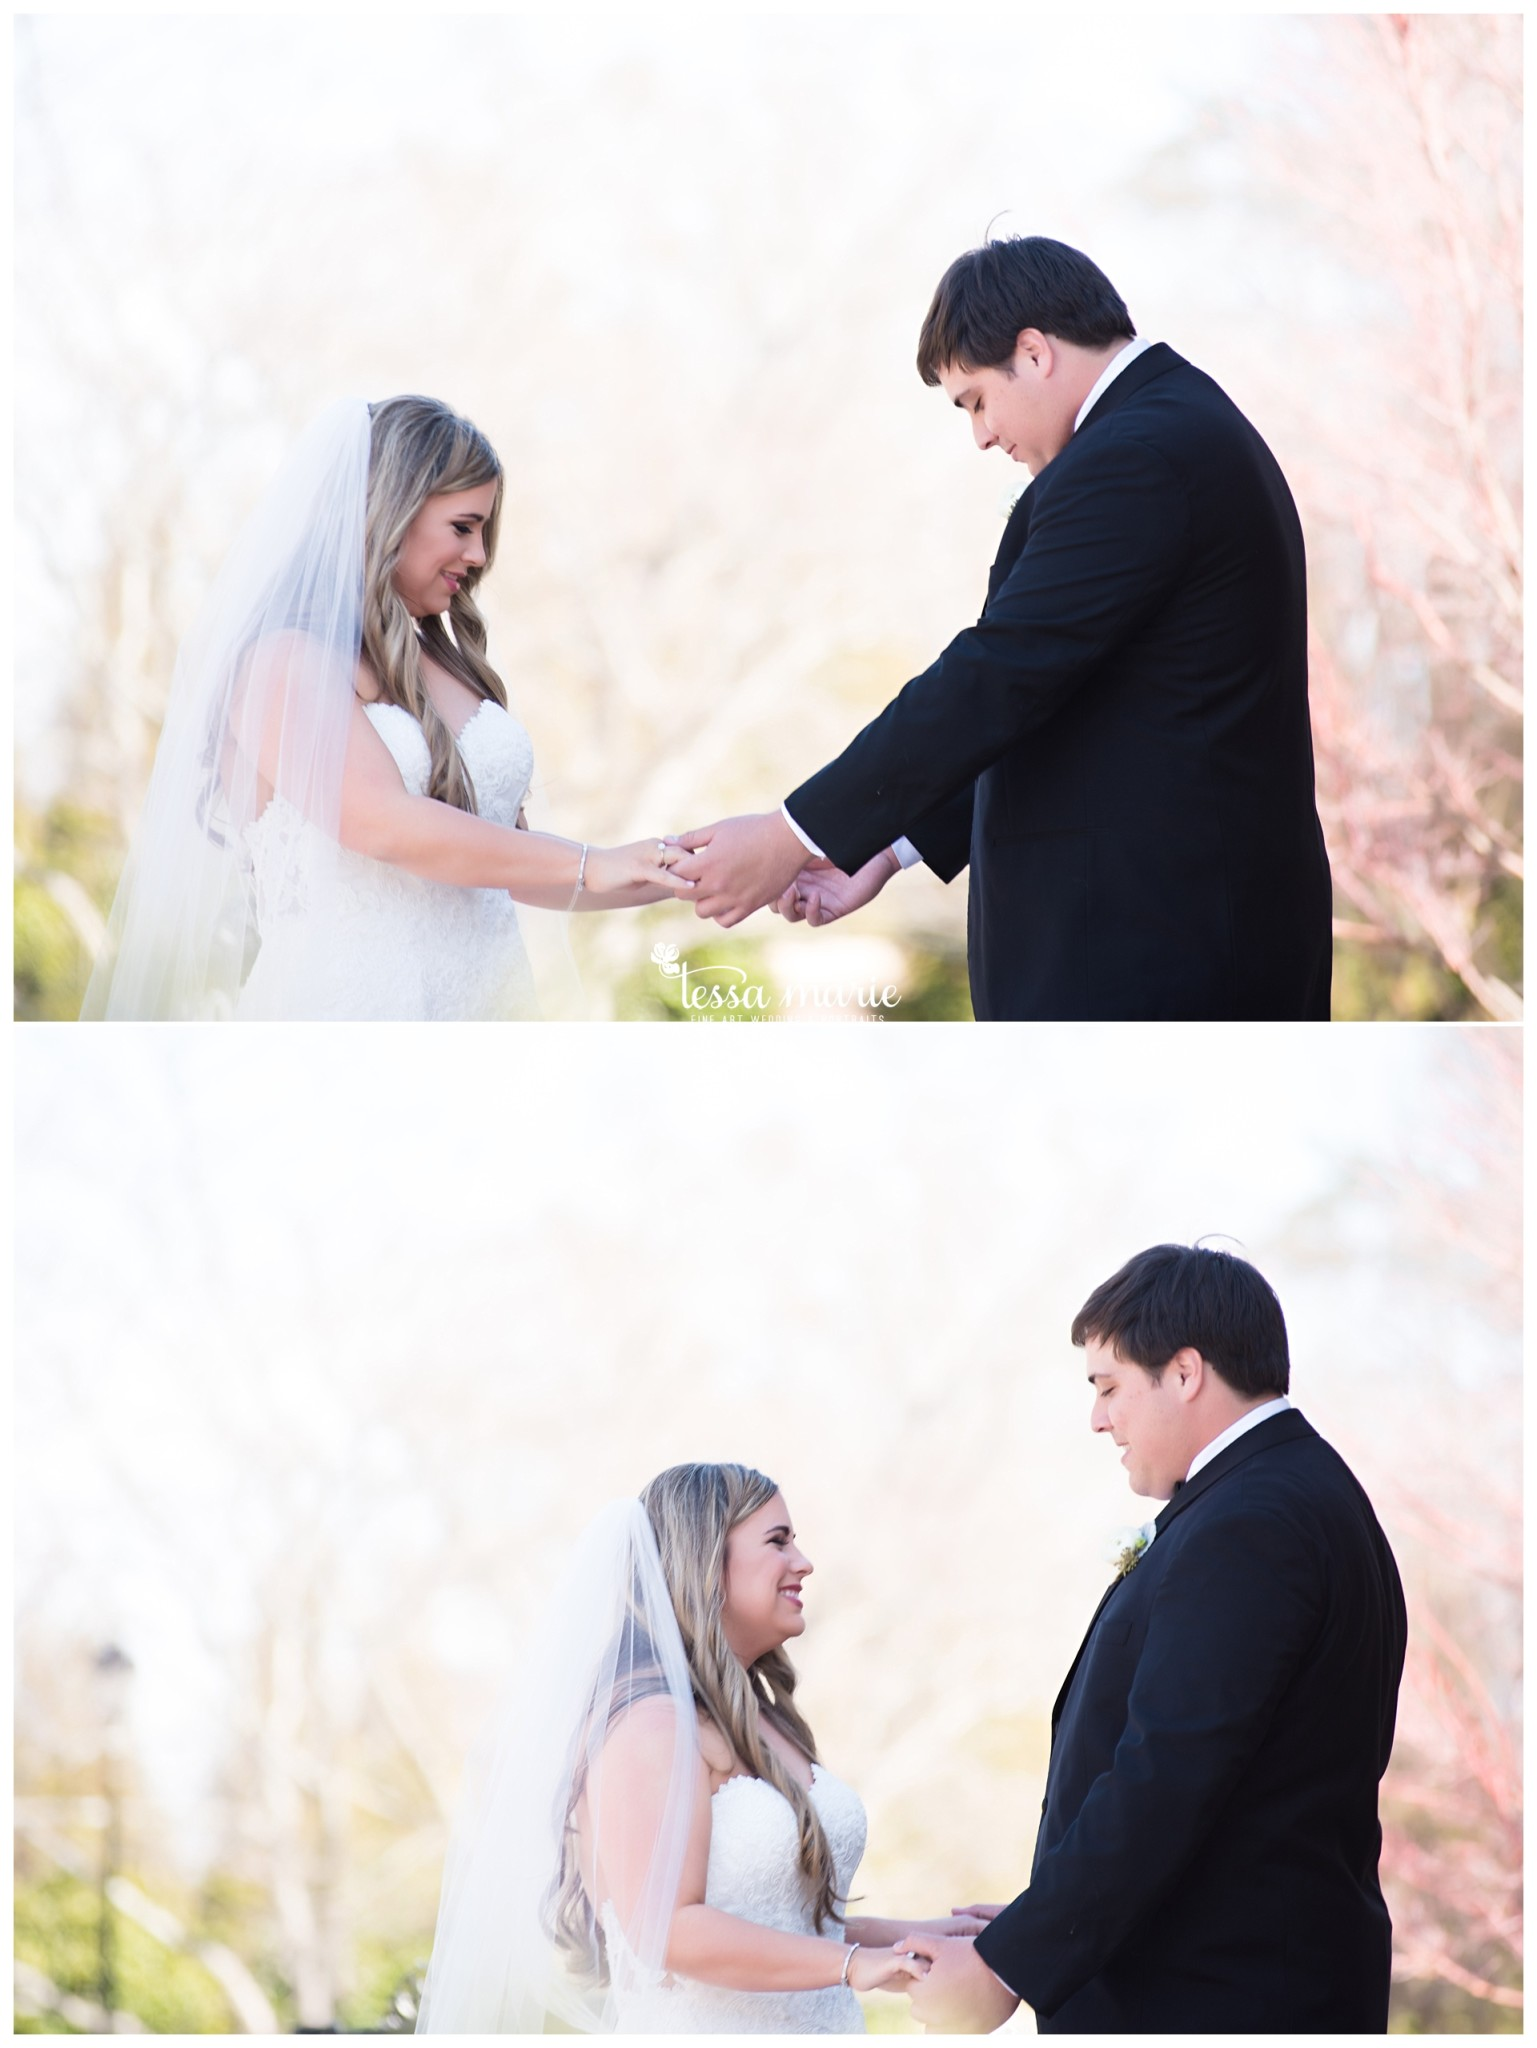 tessa_marie_weddings_legacy_story_focused_wedding_pictures_atlanta_wedding_photographer_0084